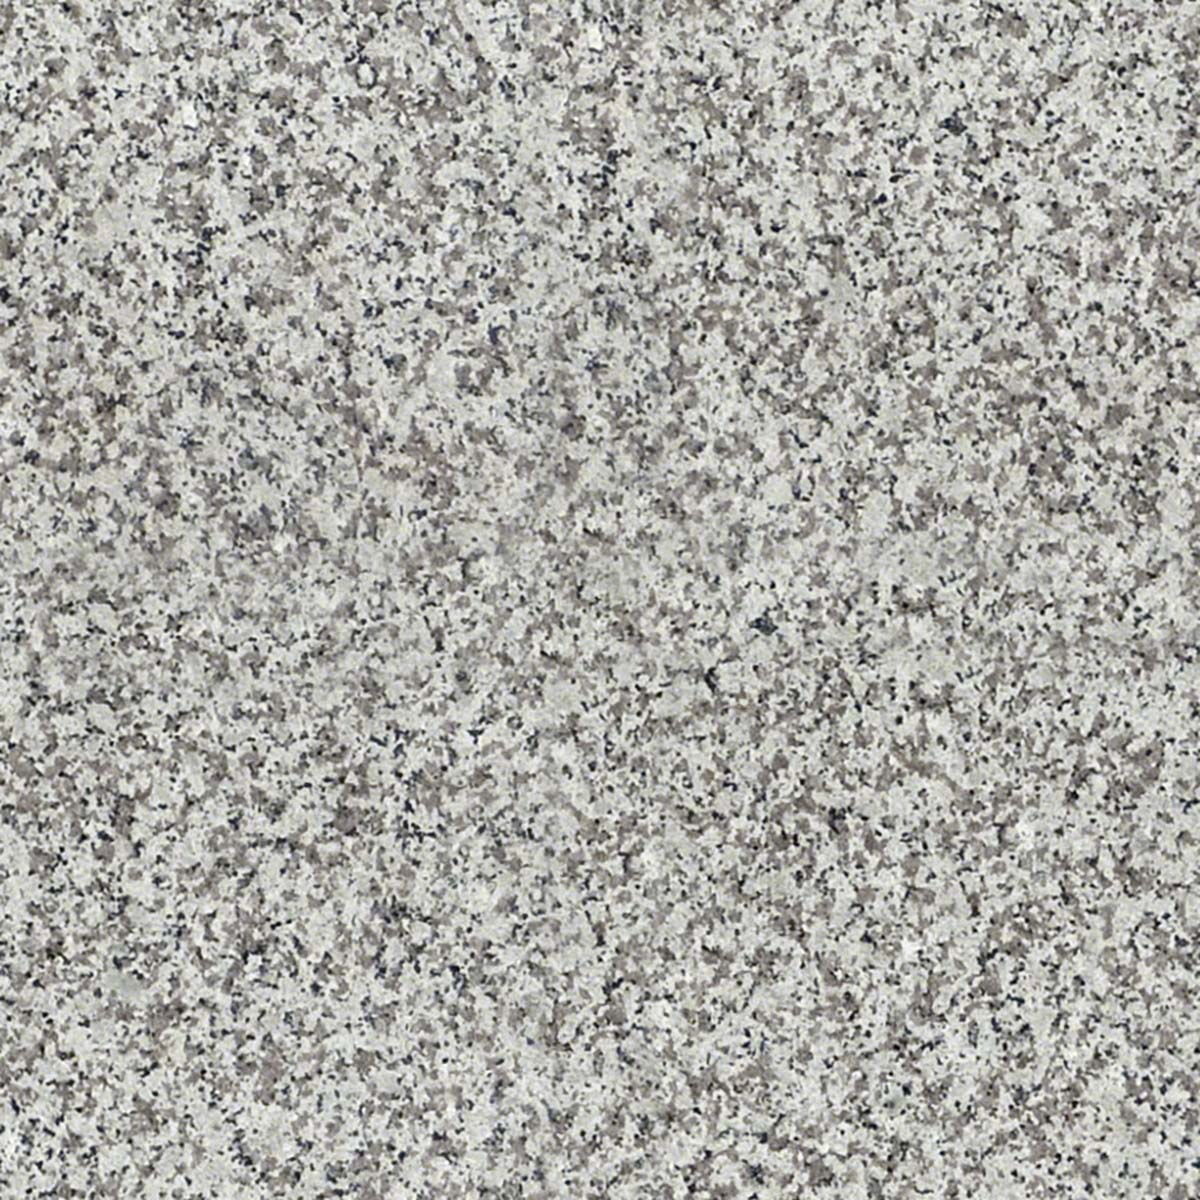 Taupe Quartz Countertop Granite Colors Flemington Granite